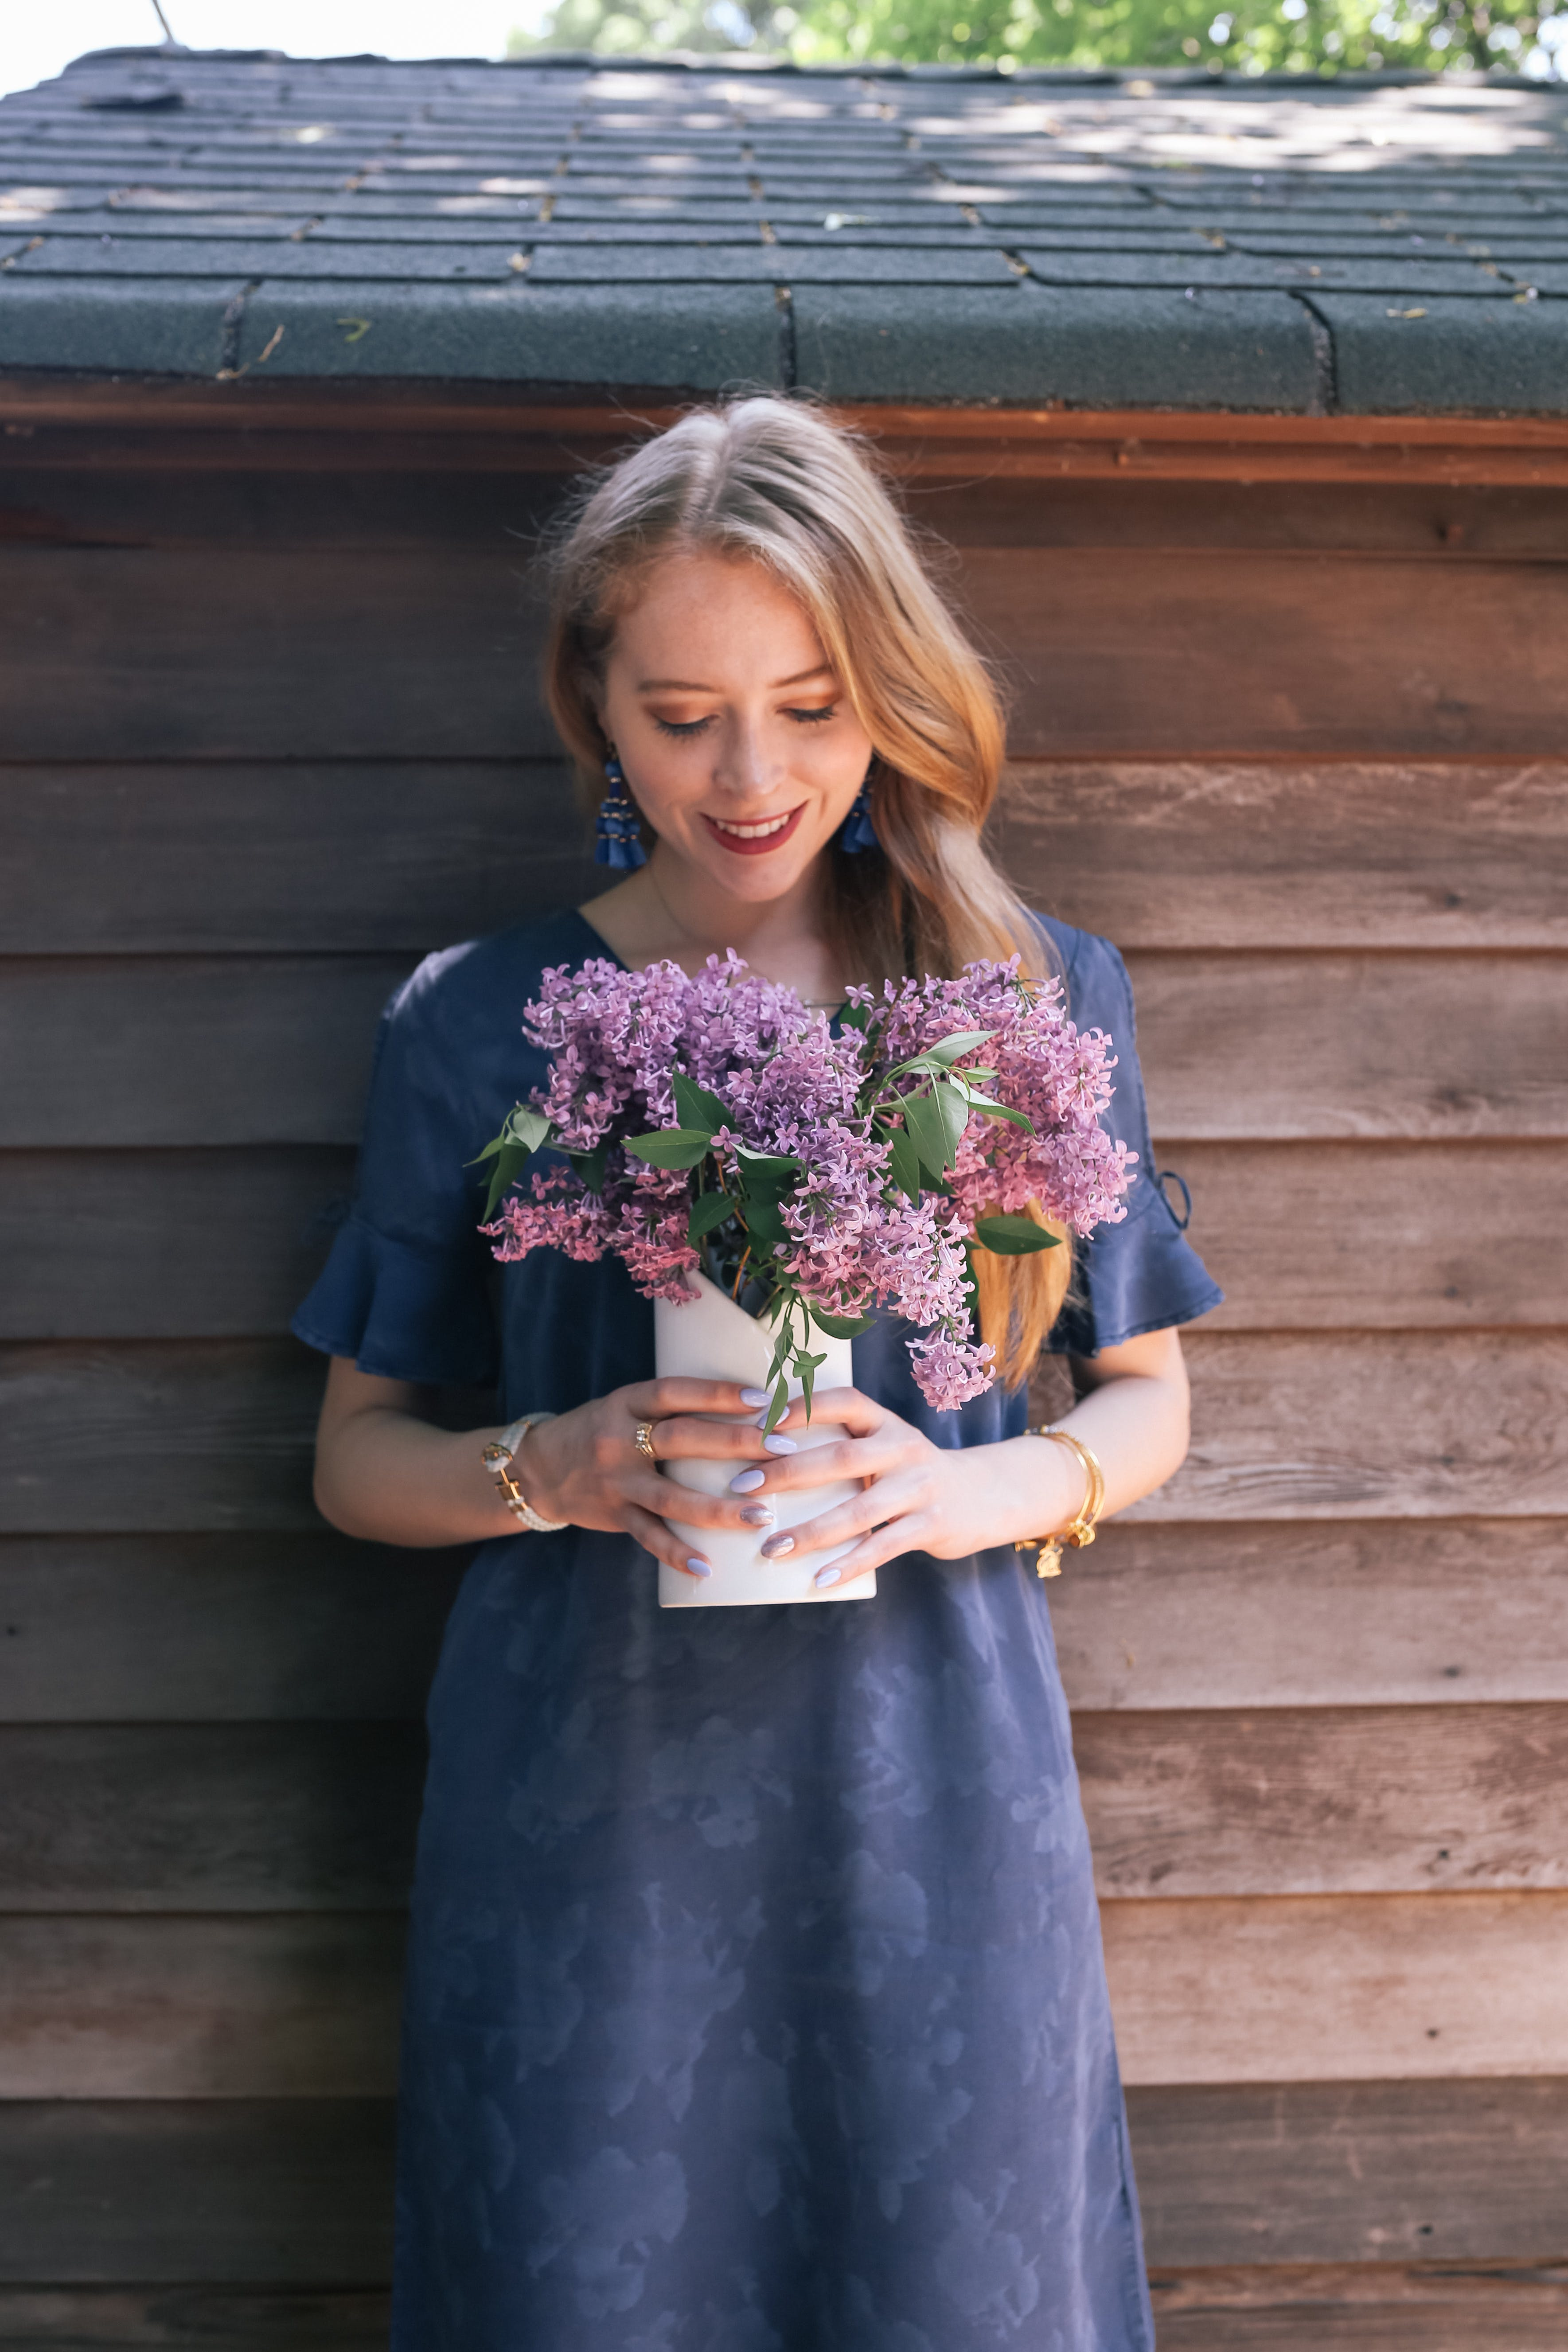 Lilacs and Denim Dresses